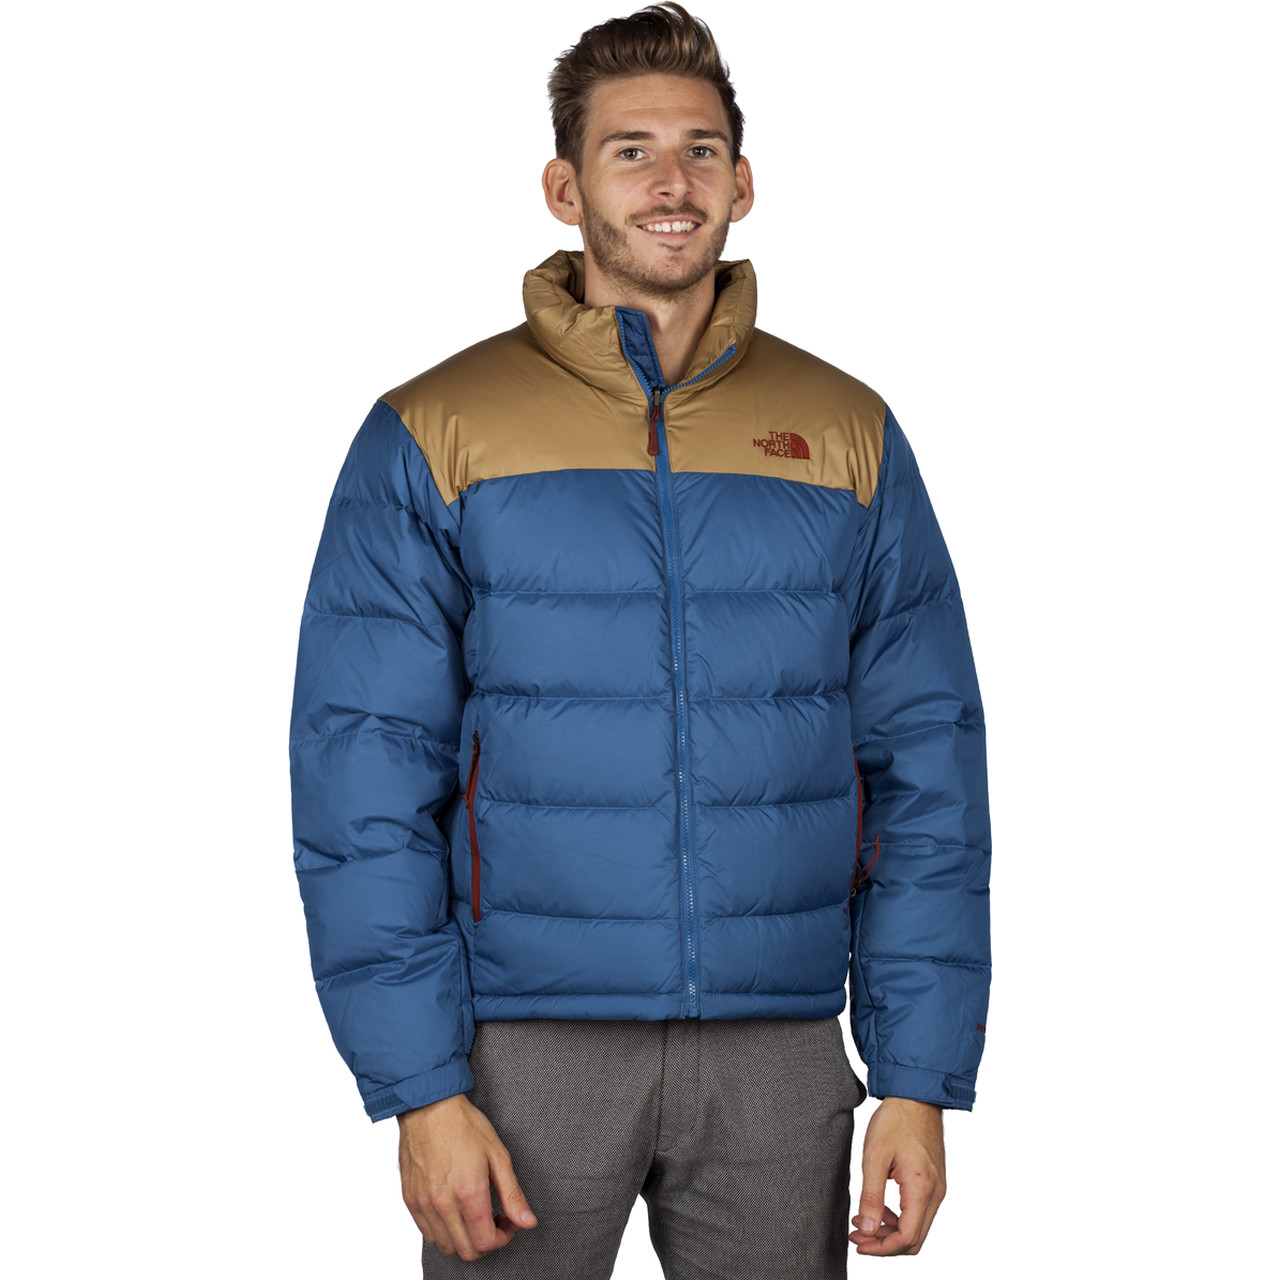 ... switzerland kurtka the north face m nuptse 2 jacket cjkt0aufdcjk 9d7e7  31a5c ... e75e7d720